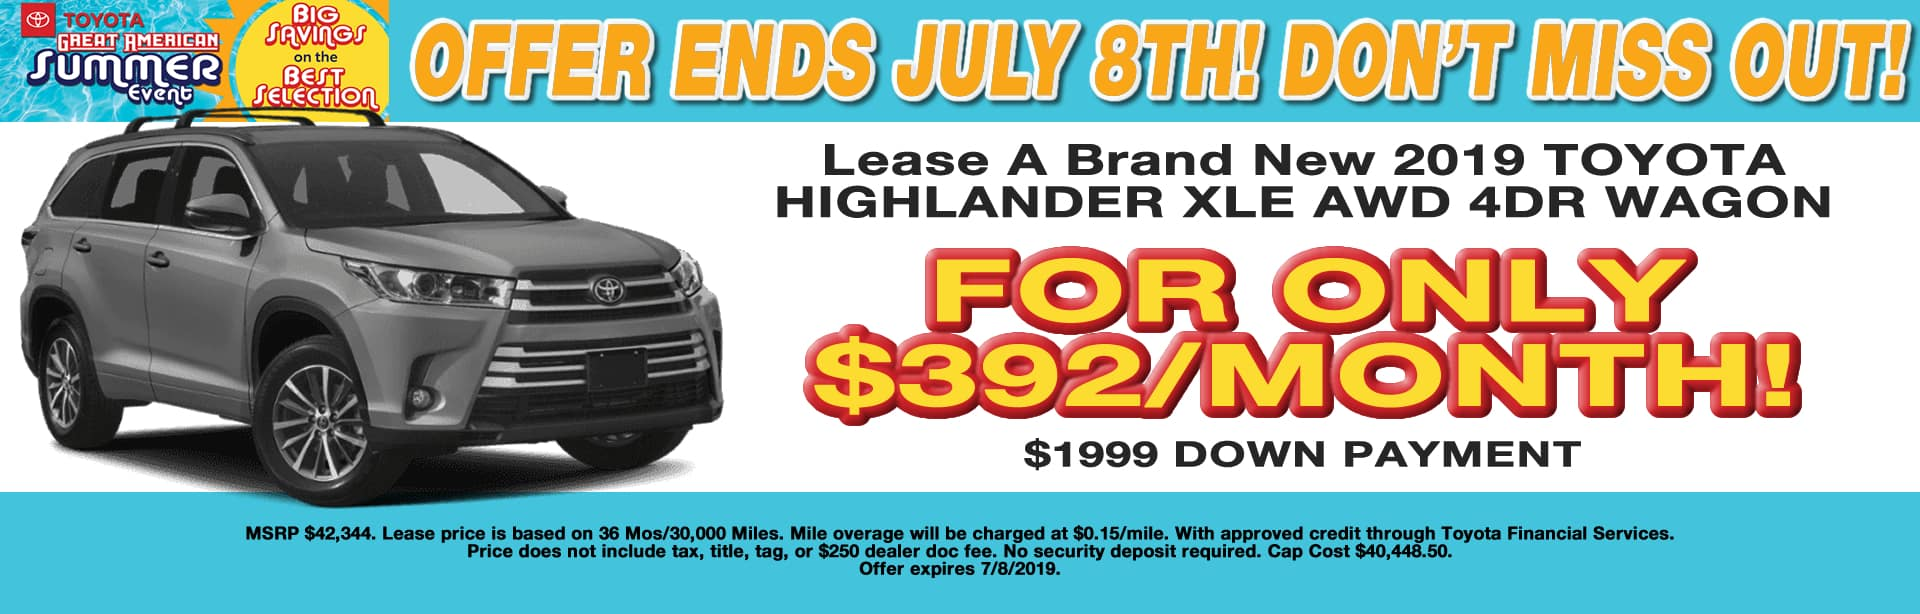 HIGHLANDER LEASE SPECIAL CAIN TOYOTA NORTH CANTON OHIO